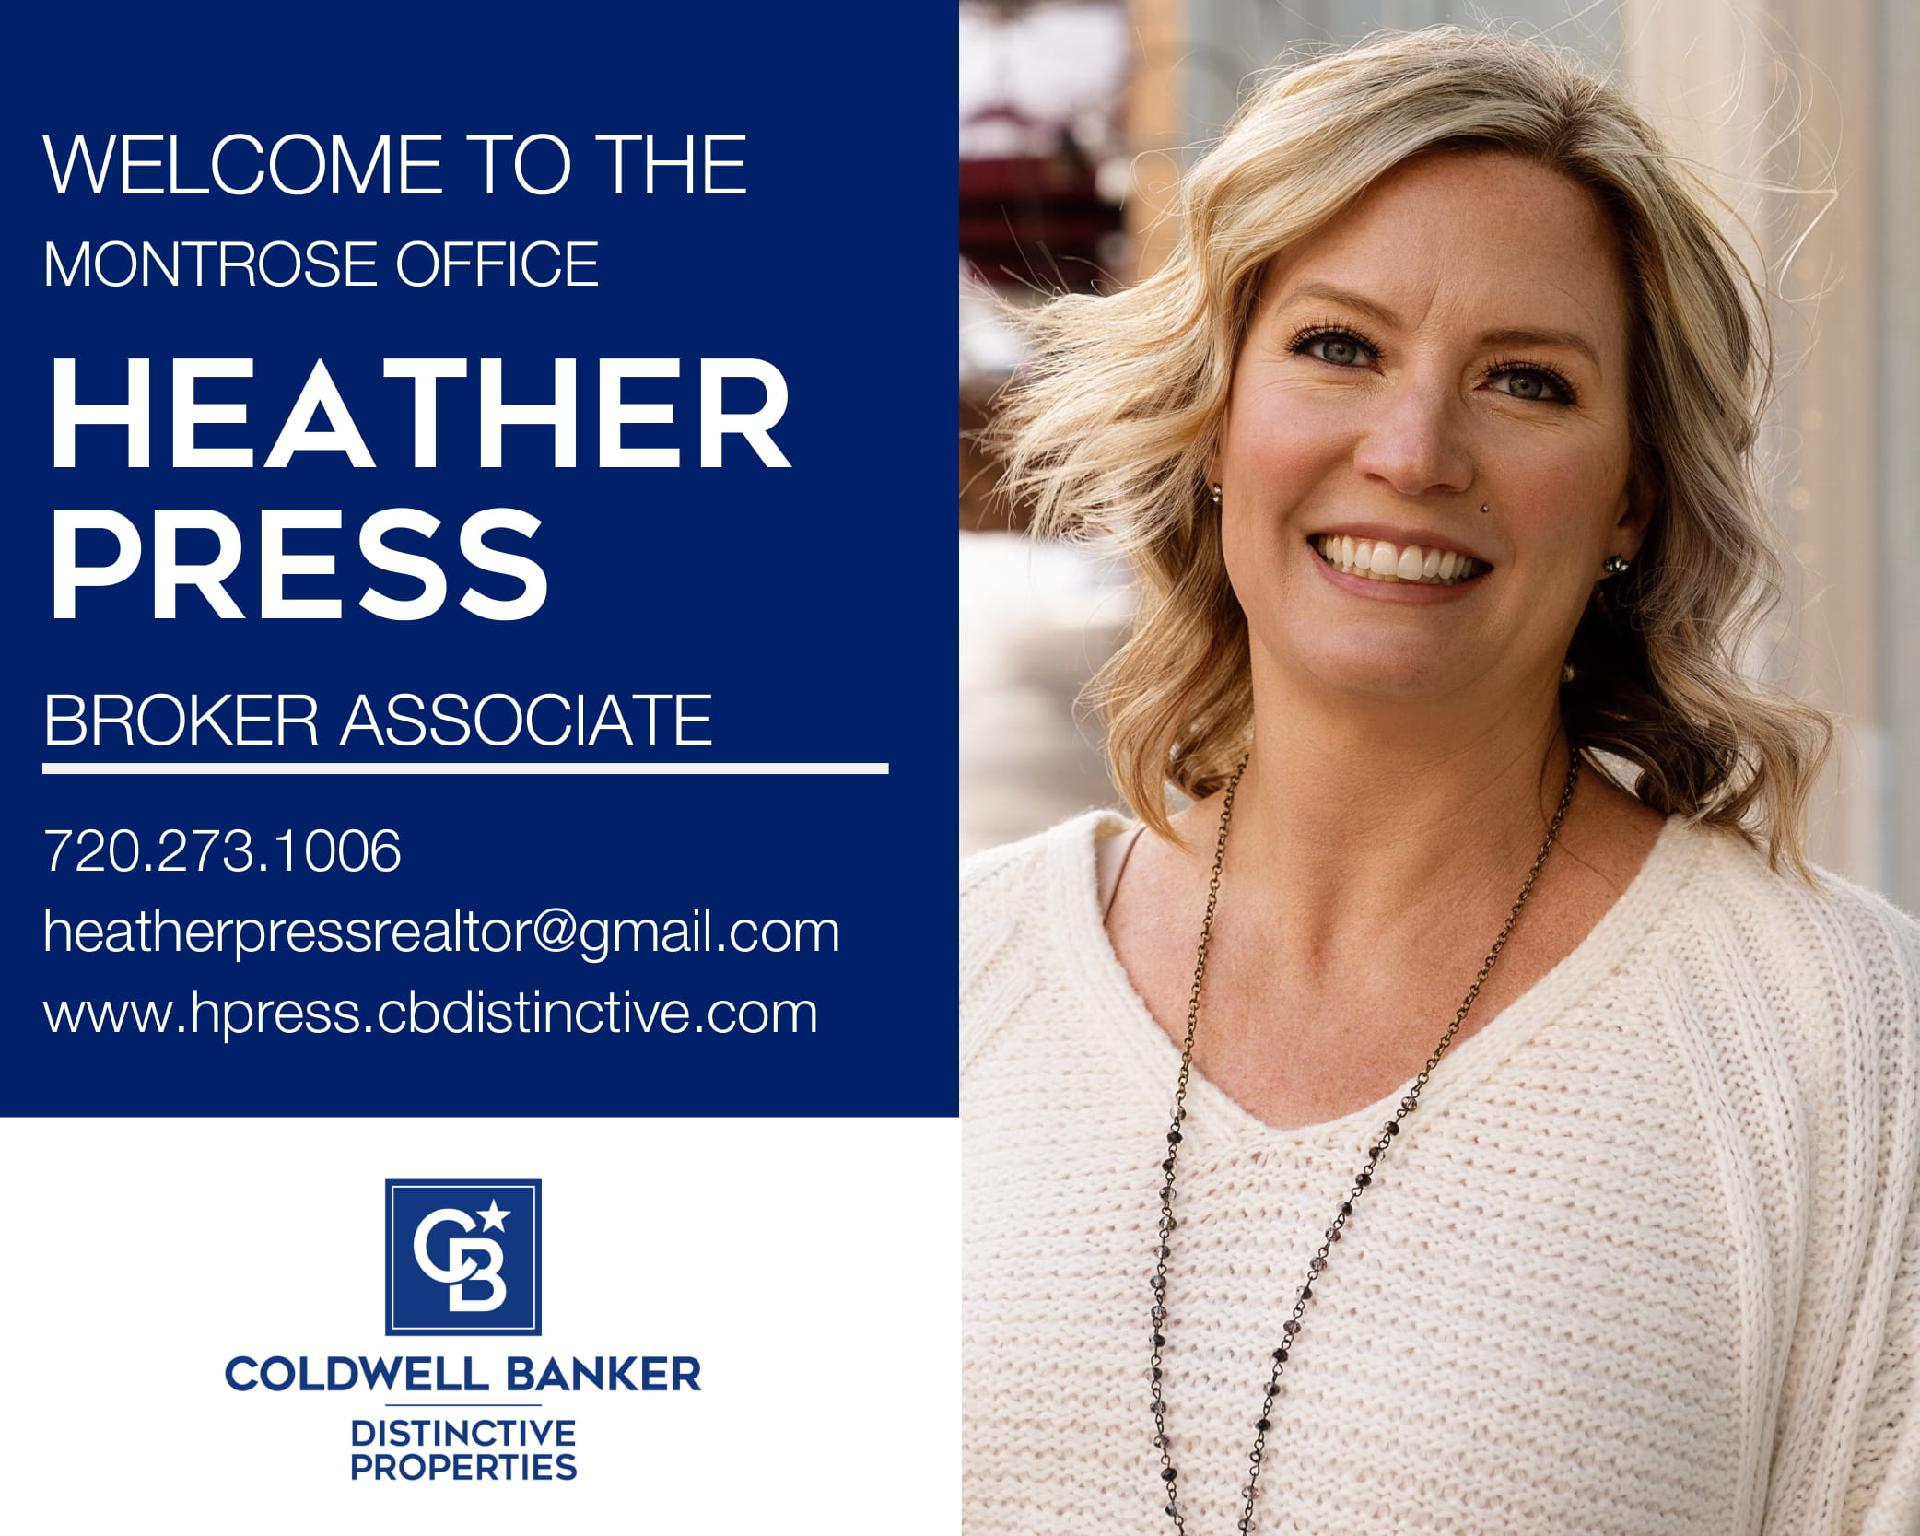 Please help us welcome Heather Press to our Coldwell Banker family! Main Photo